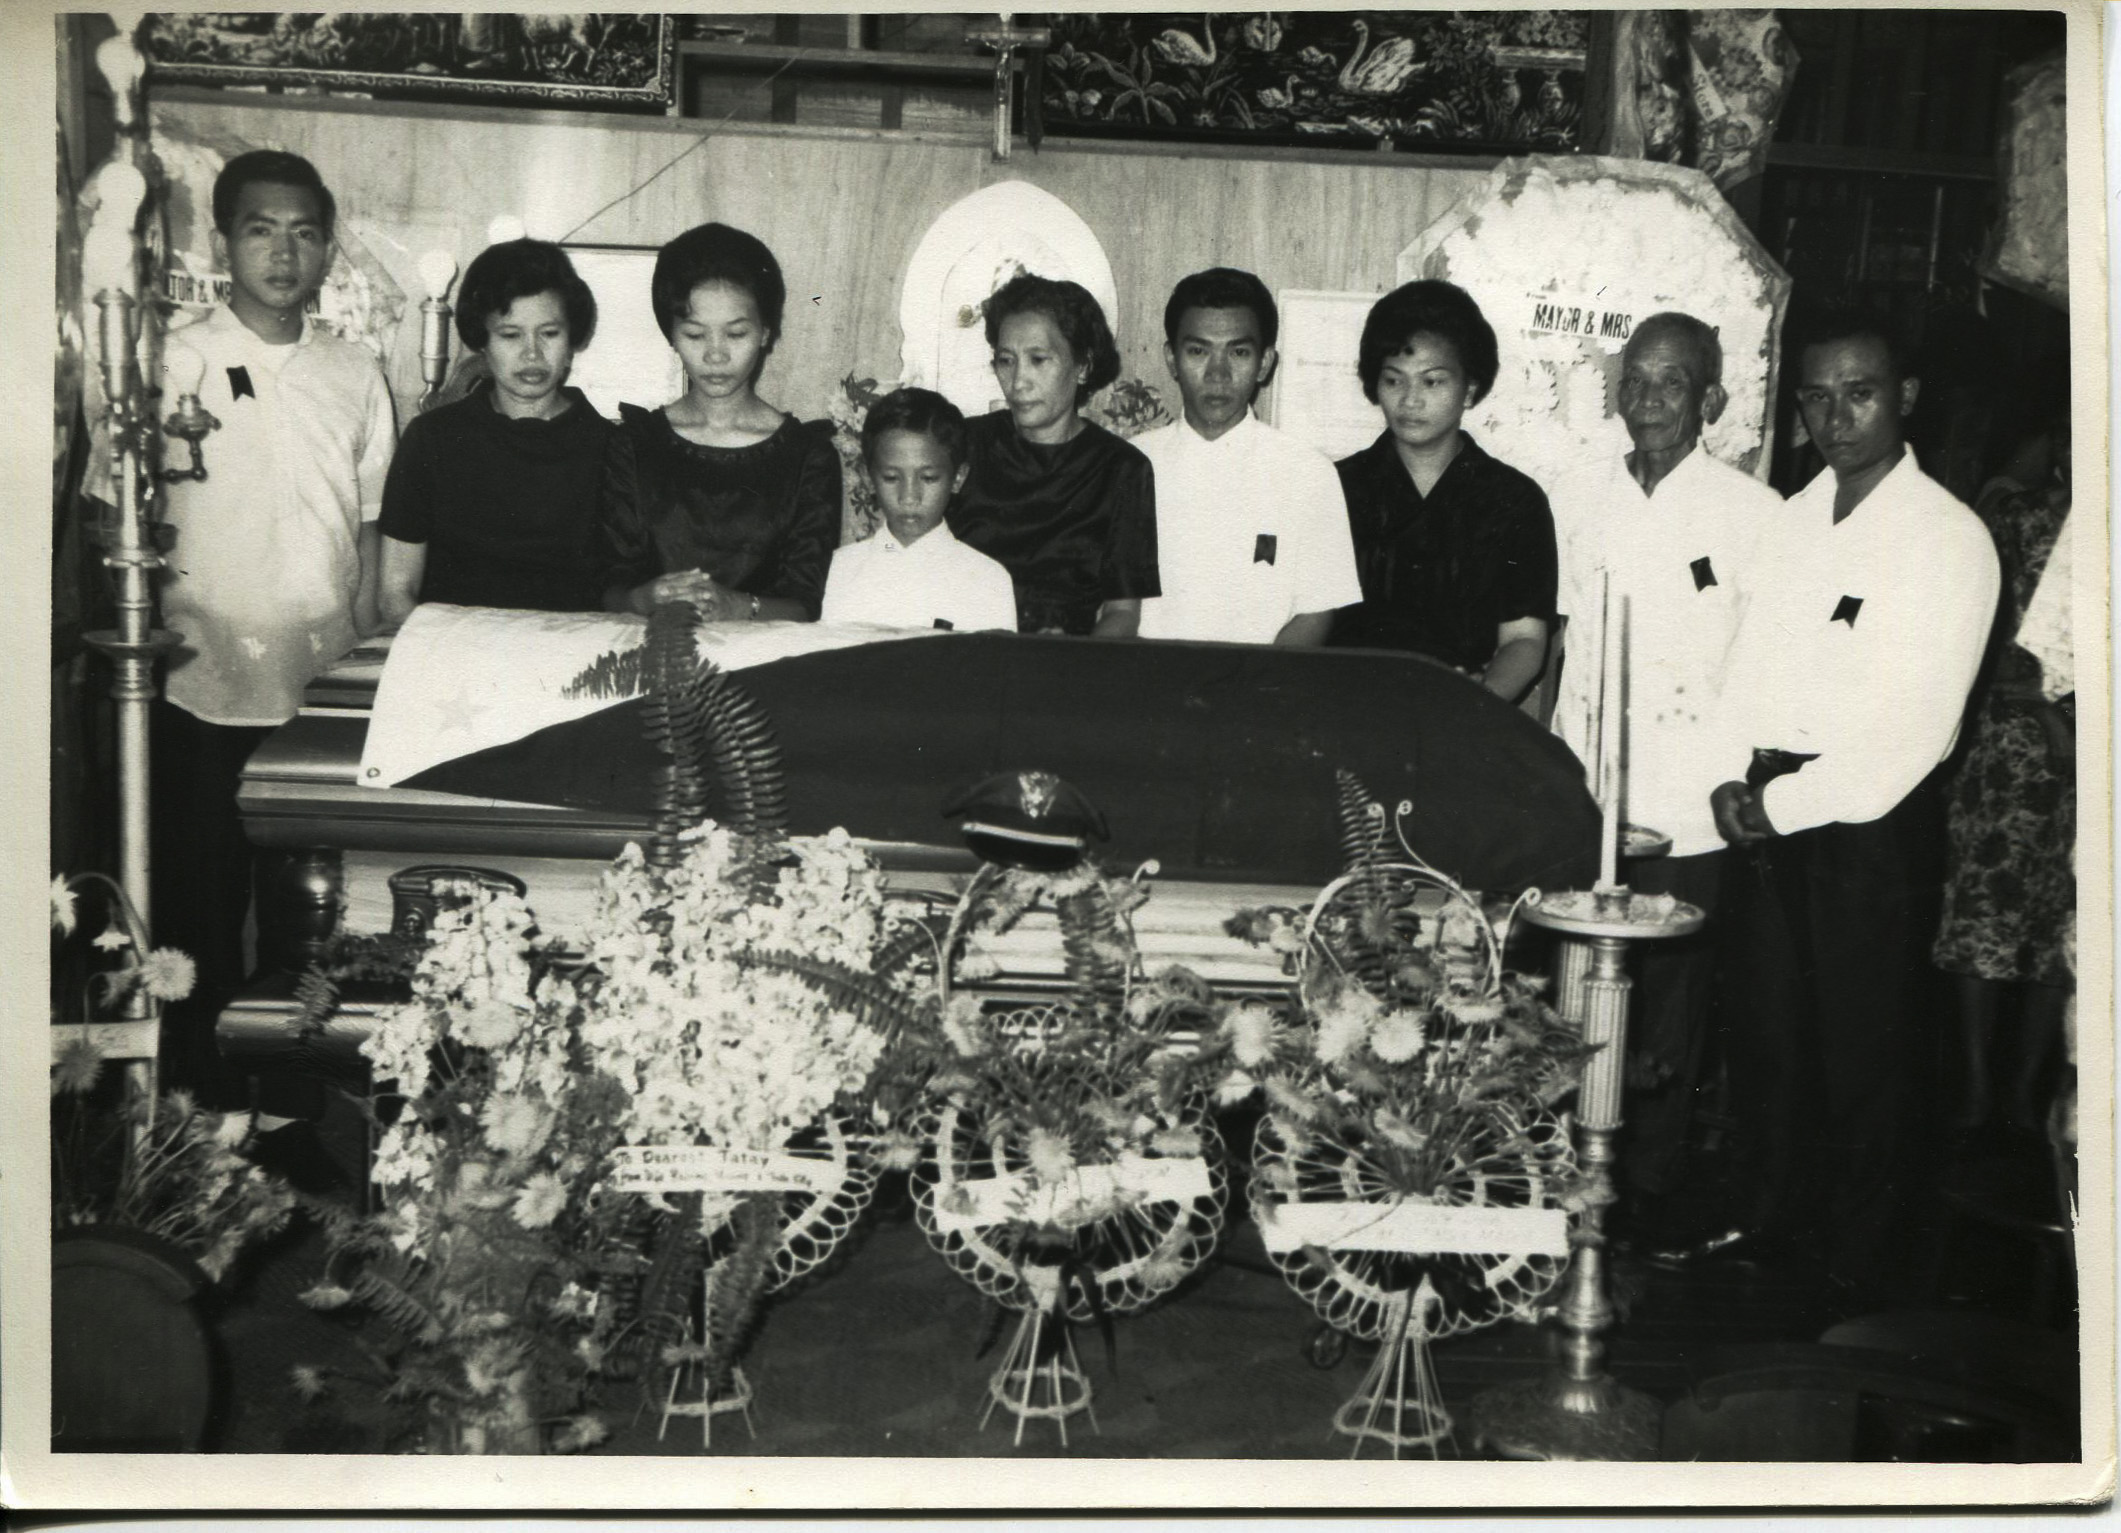 "Photo of Arguelles' family, October 13, 1967.  Arguelles acquired the photo in 2011 when her dad died. It was taken at Jaro Cathedral in Iloilo City at Arguelles' grandfather's funeral. The grandfather was a policeman and his funeral was very impressive with salutes and tributes. Left to right: Pedro (uncle), Magdalena (mother), Isabel (aunt), Eliseo (uncle), ""Noning"" Dionisia (step grandmother), Ismael (uncle), Amparo (aunt), unknown, father ""Toting"" Jose. Arguelles likes that this picture shows how important Catholicism has been to her family, and how well loved her grandfather was.   Any views, findings, conclusions, or recommendations expressed in this story do not necessarily represent those of the National Endowment for the Humanities. [Copyright] Field Museum of Natural History - CC BY-NC"